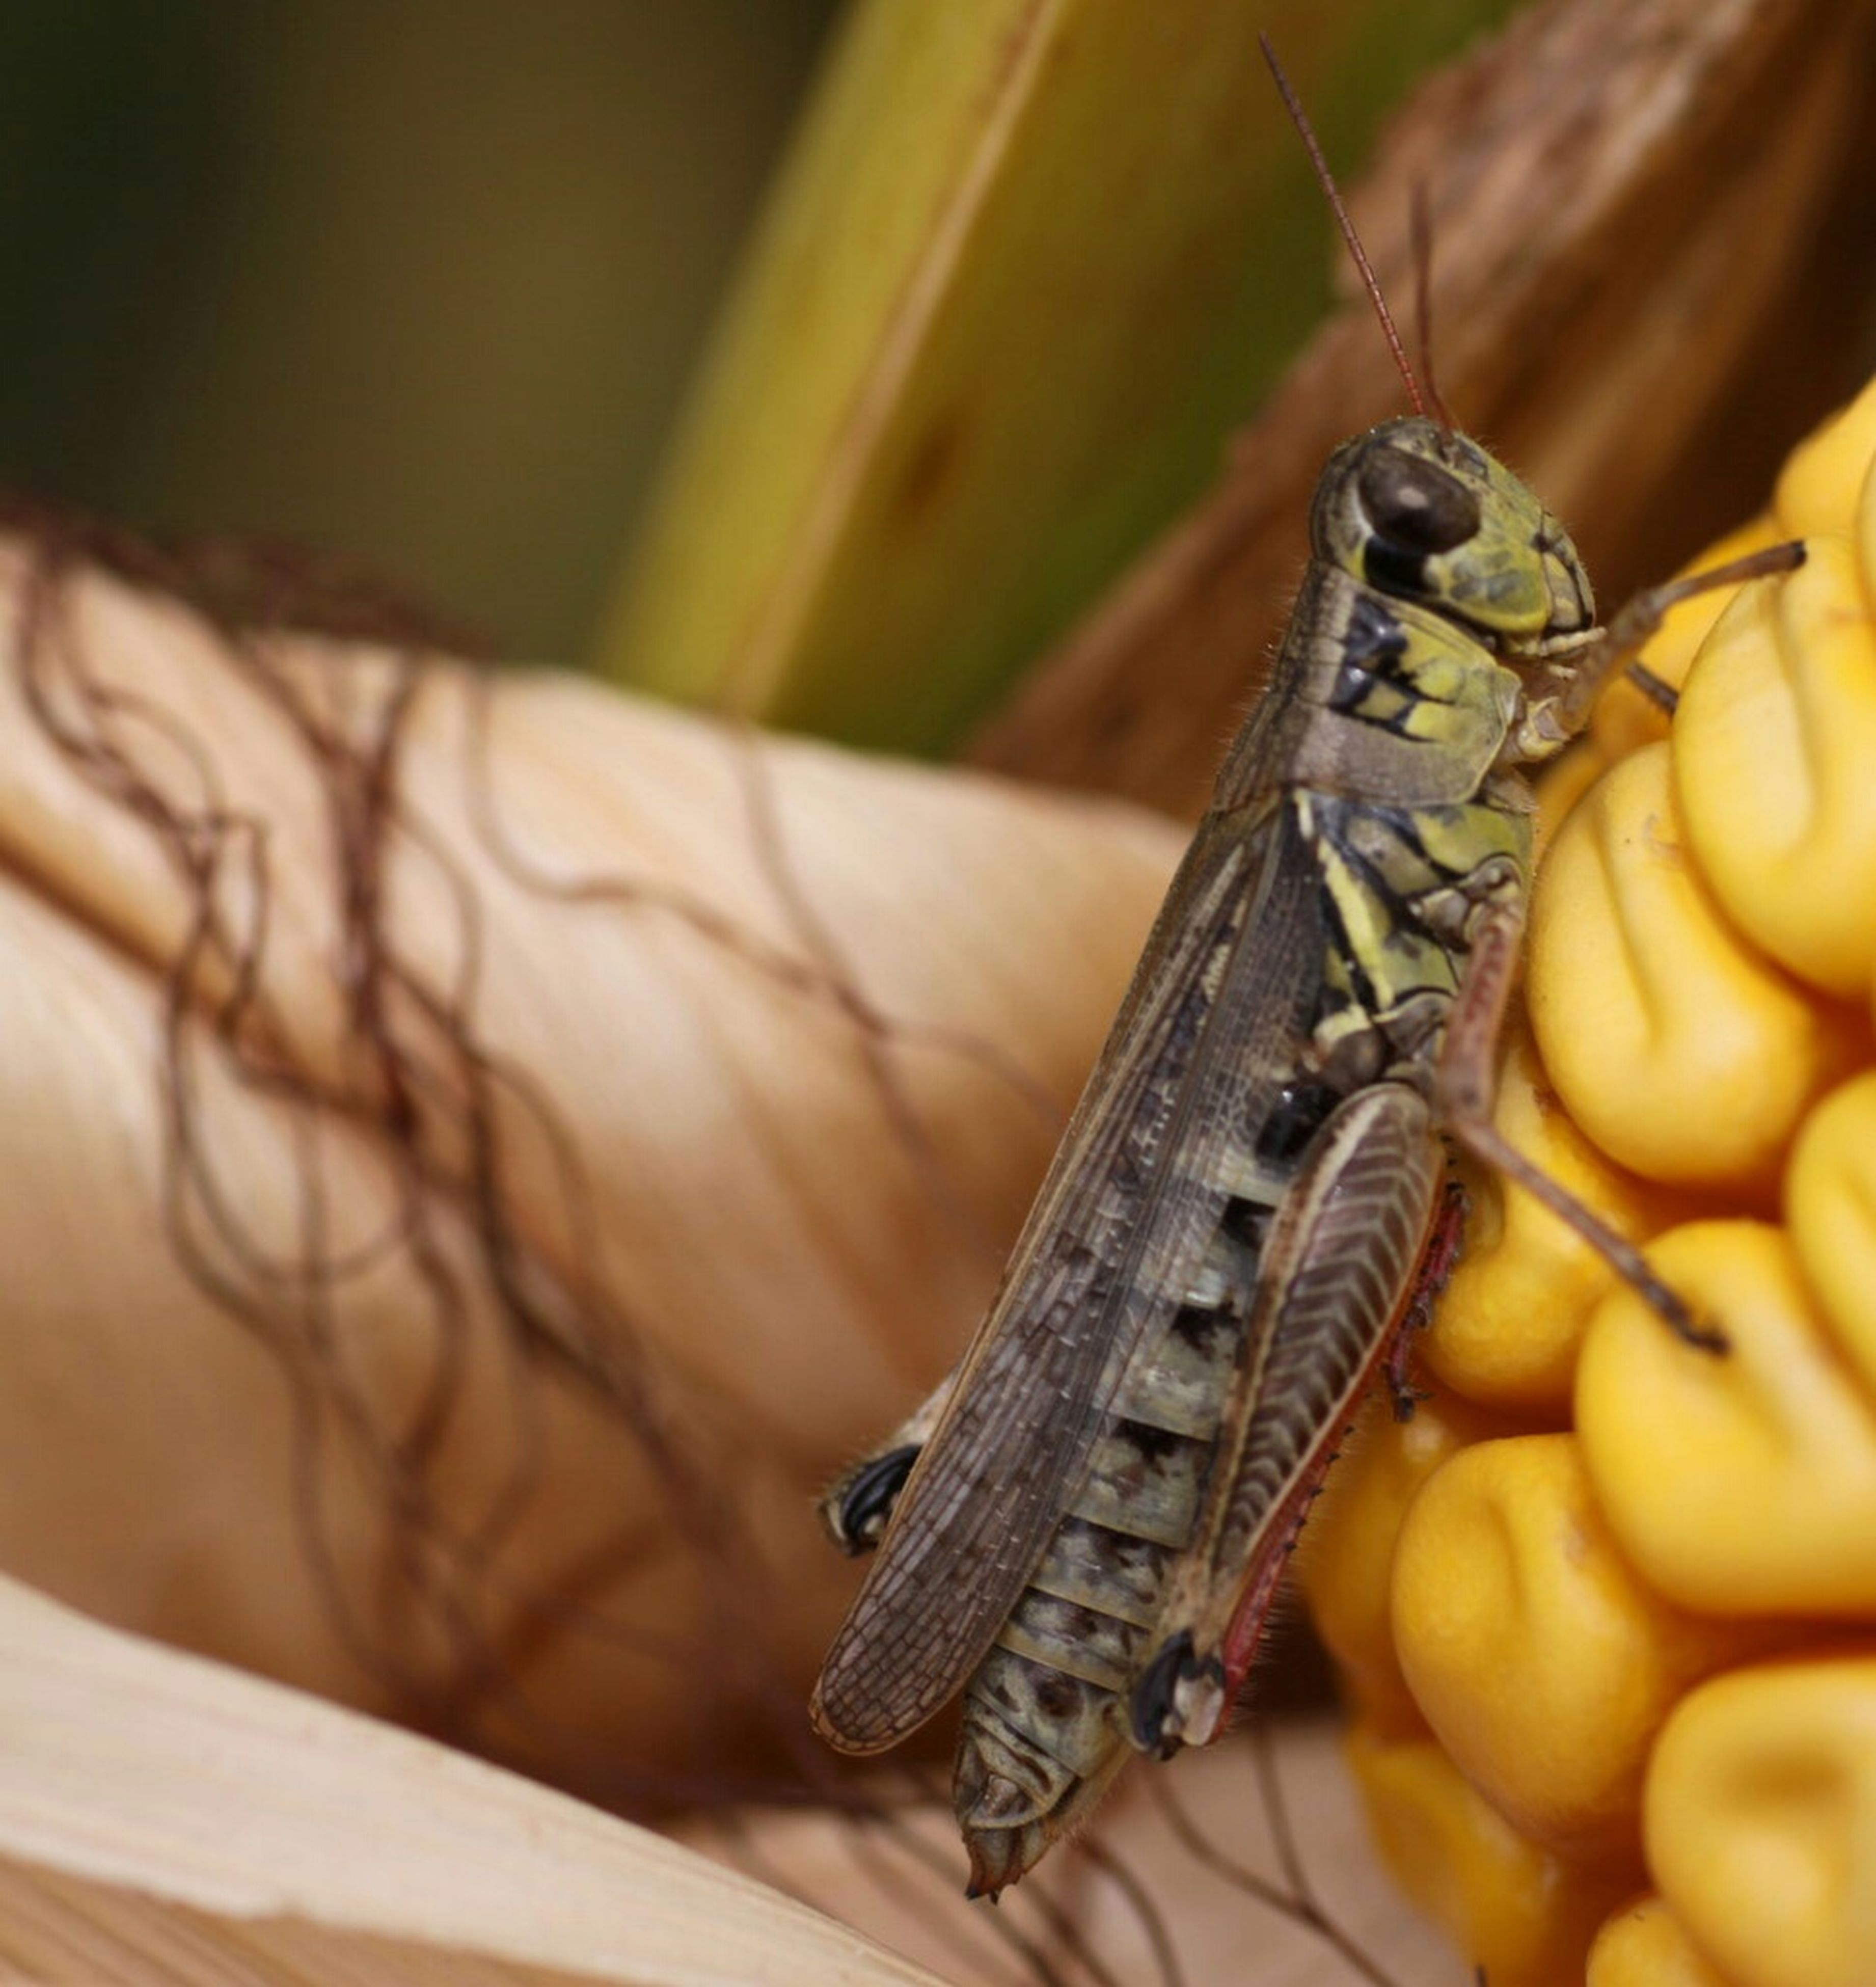 animal themes, animals in the wild, one animal, insect, wildlife, close-up, focus on foreground, animal antenna, animal wing, animal wildlife, reptile, grasshopper, selective focus, two animals, zoology, outdoors, wood - material, day, nature, animal markings